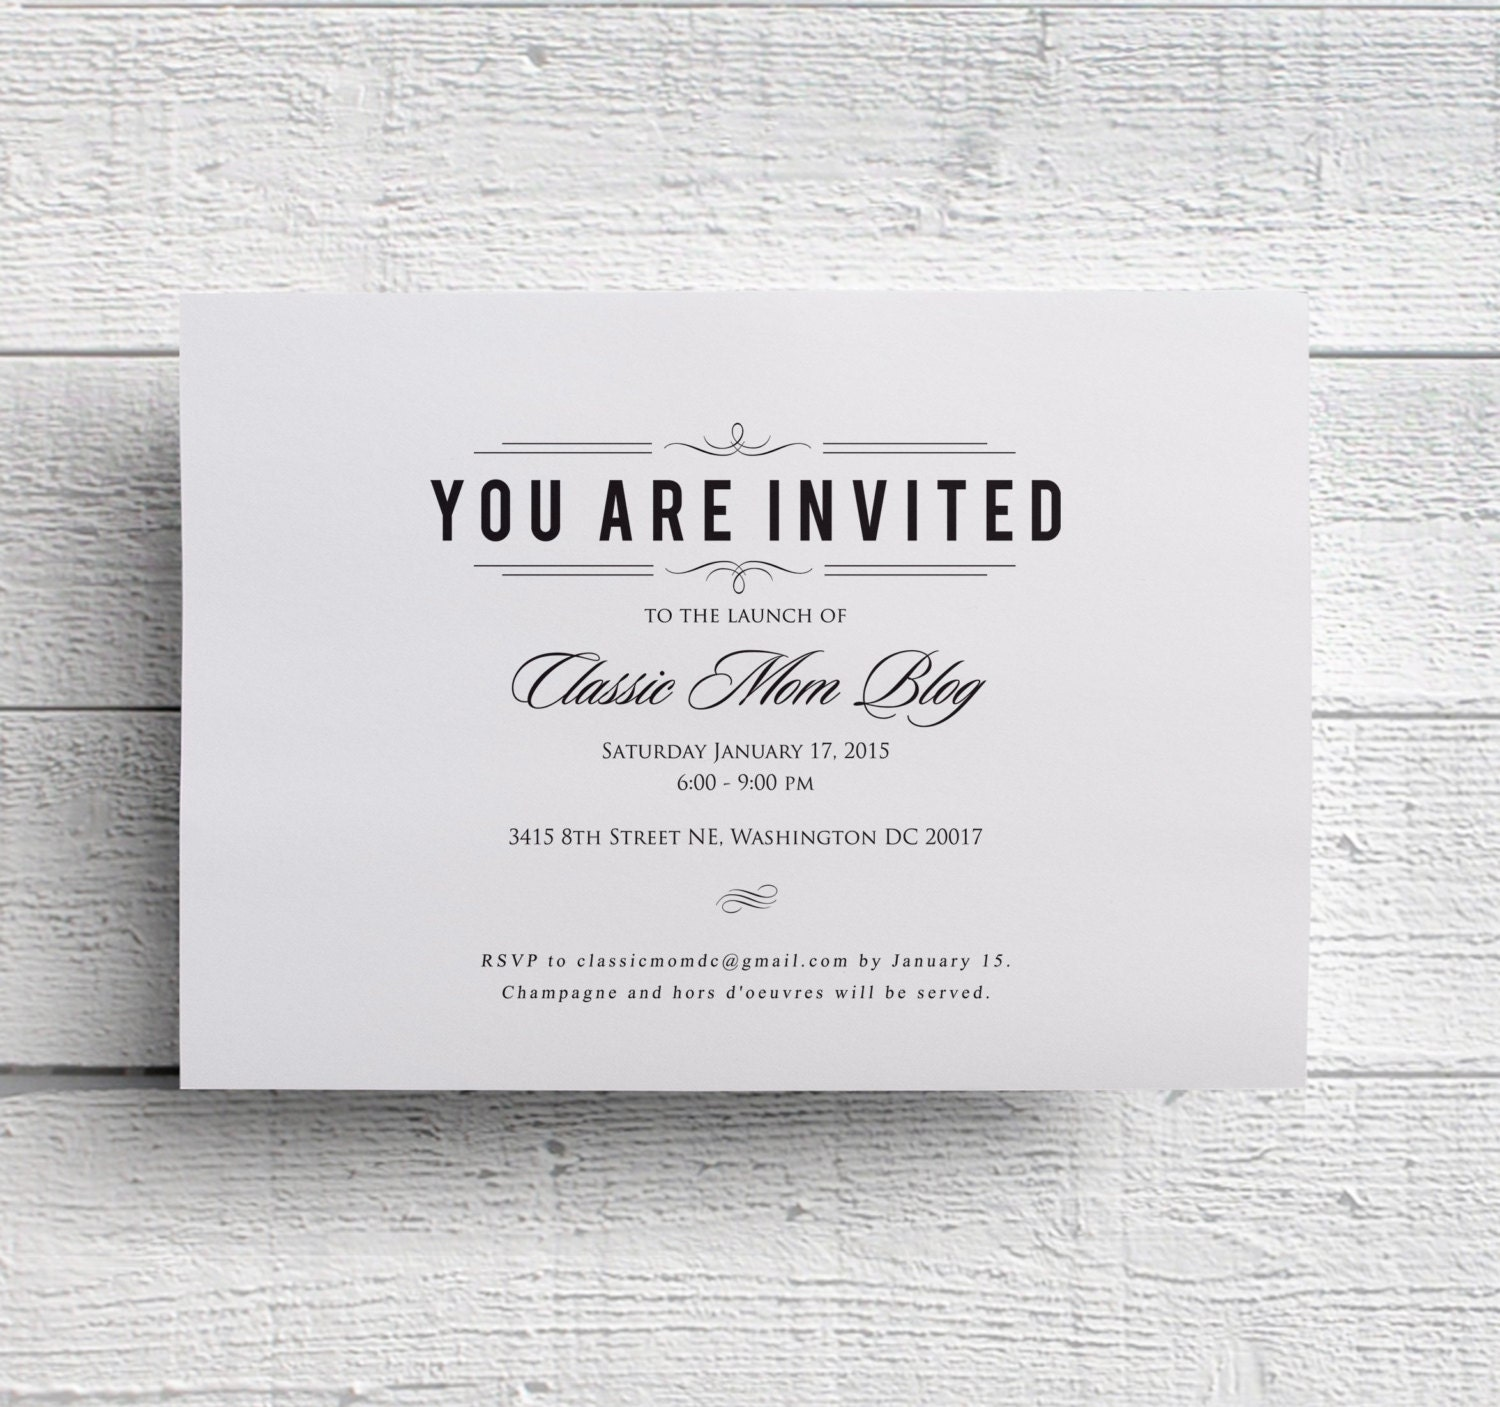 dinner invitation corporate event company dinner fundraiser 128270zoom